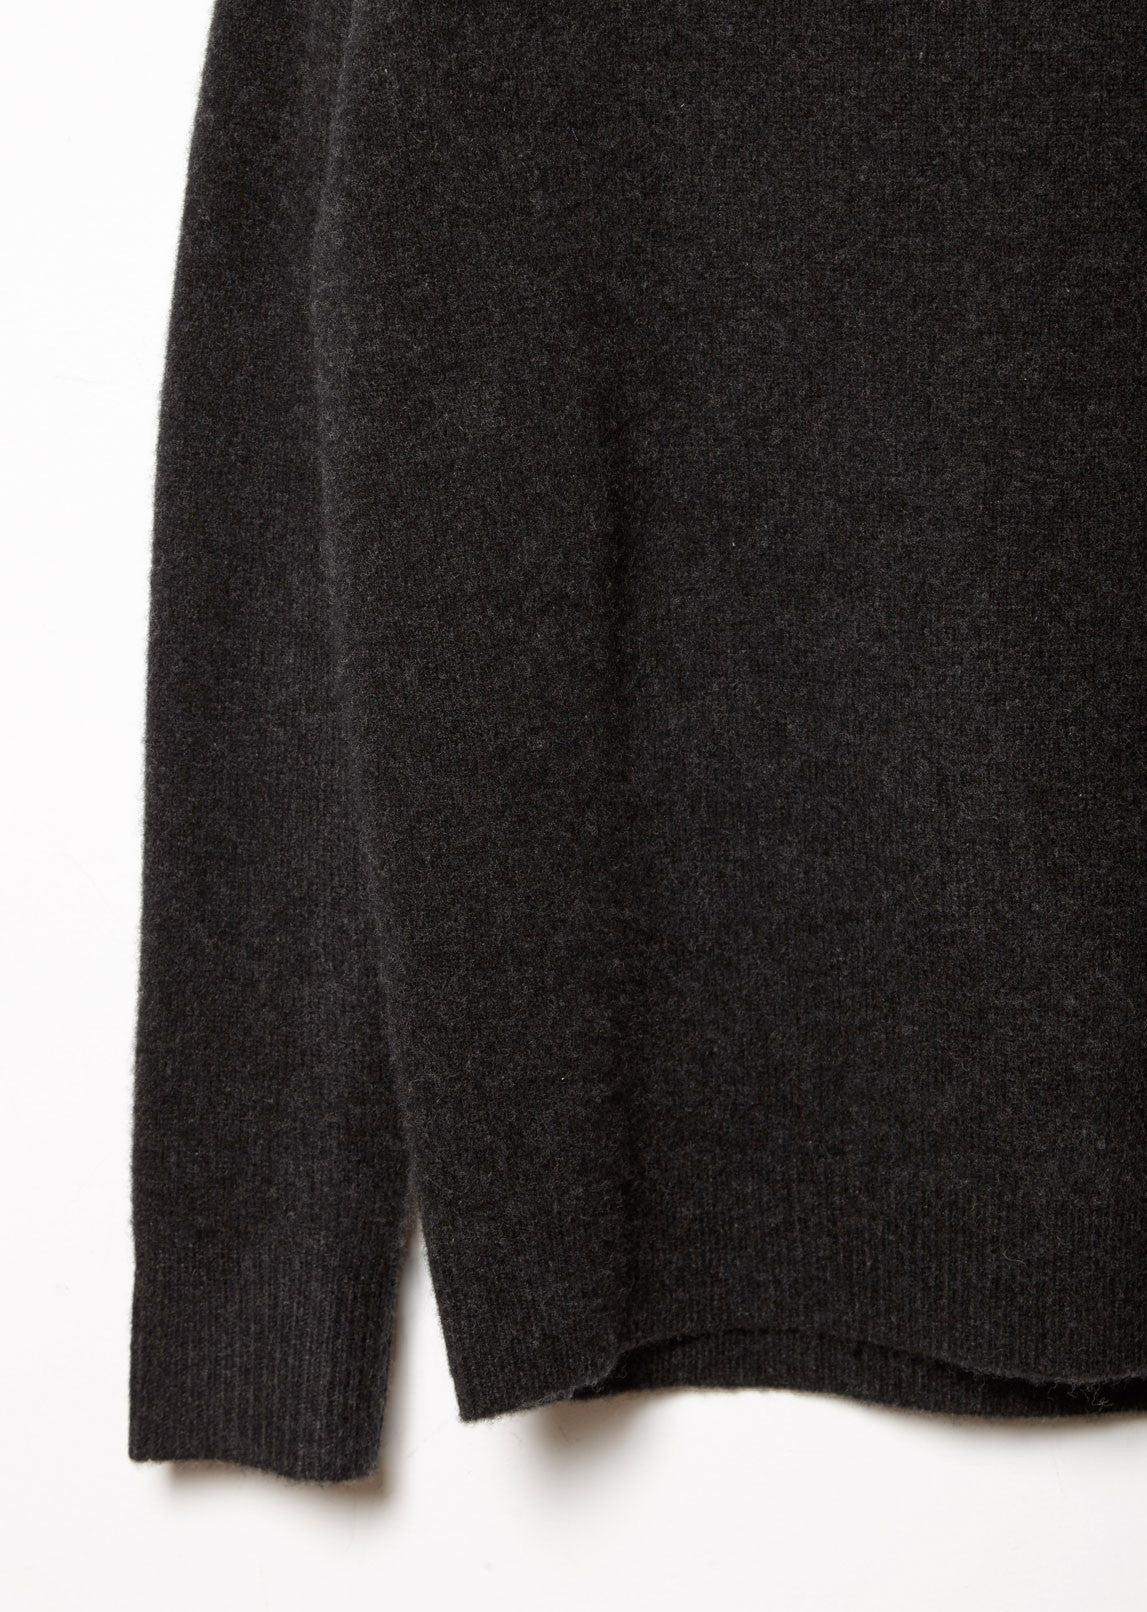 Academie Crewneck Sweater